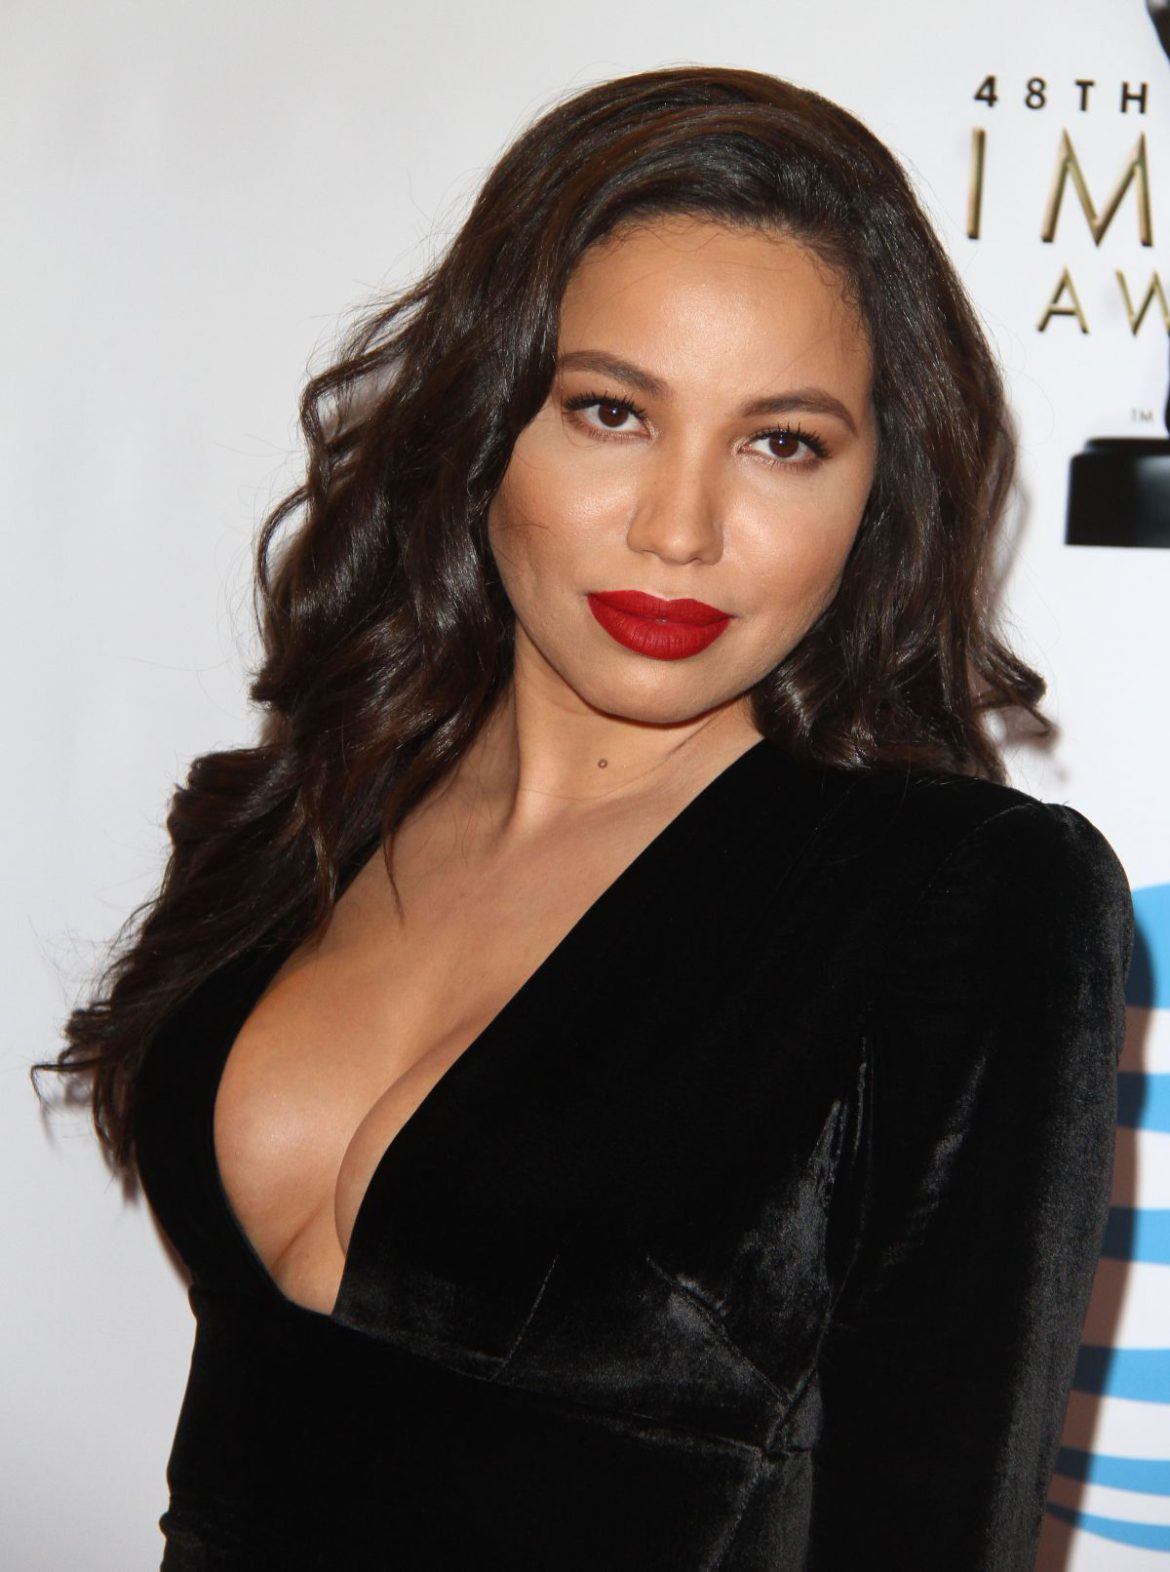 What are our views upon the actress Jurnee Smollet?